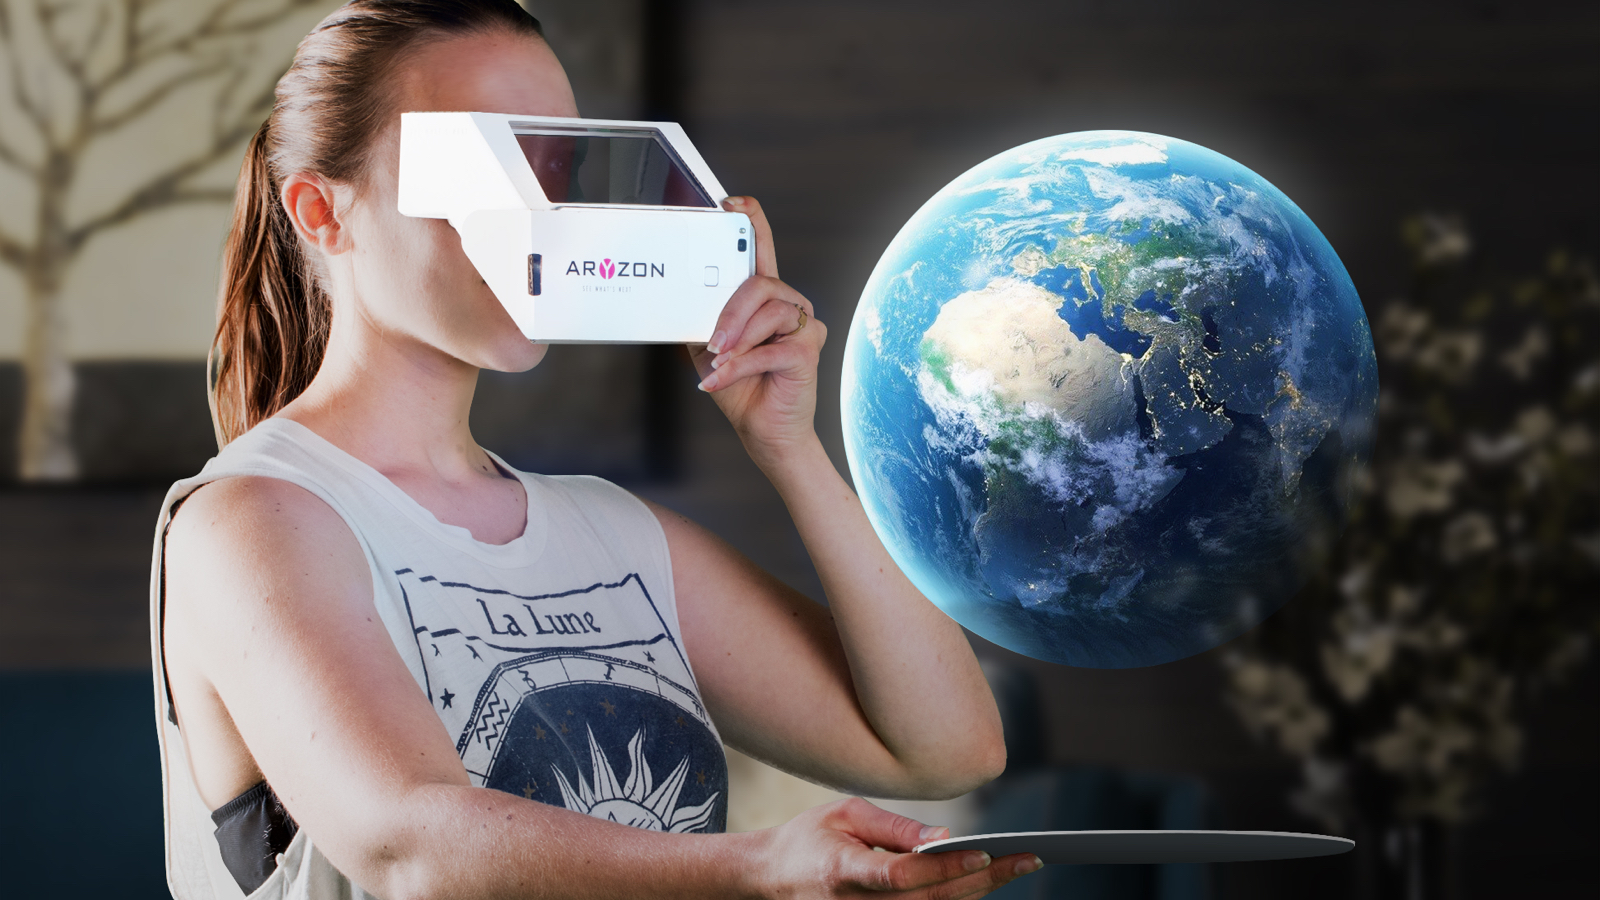 Aryzon wants to be the Cardboard for AR